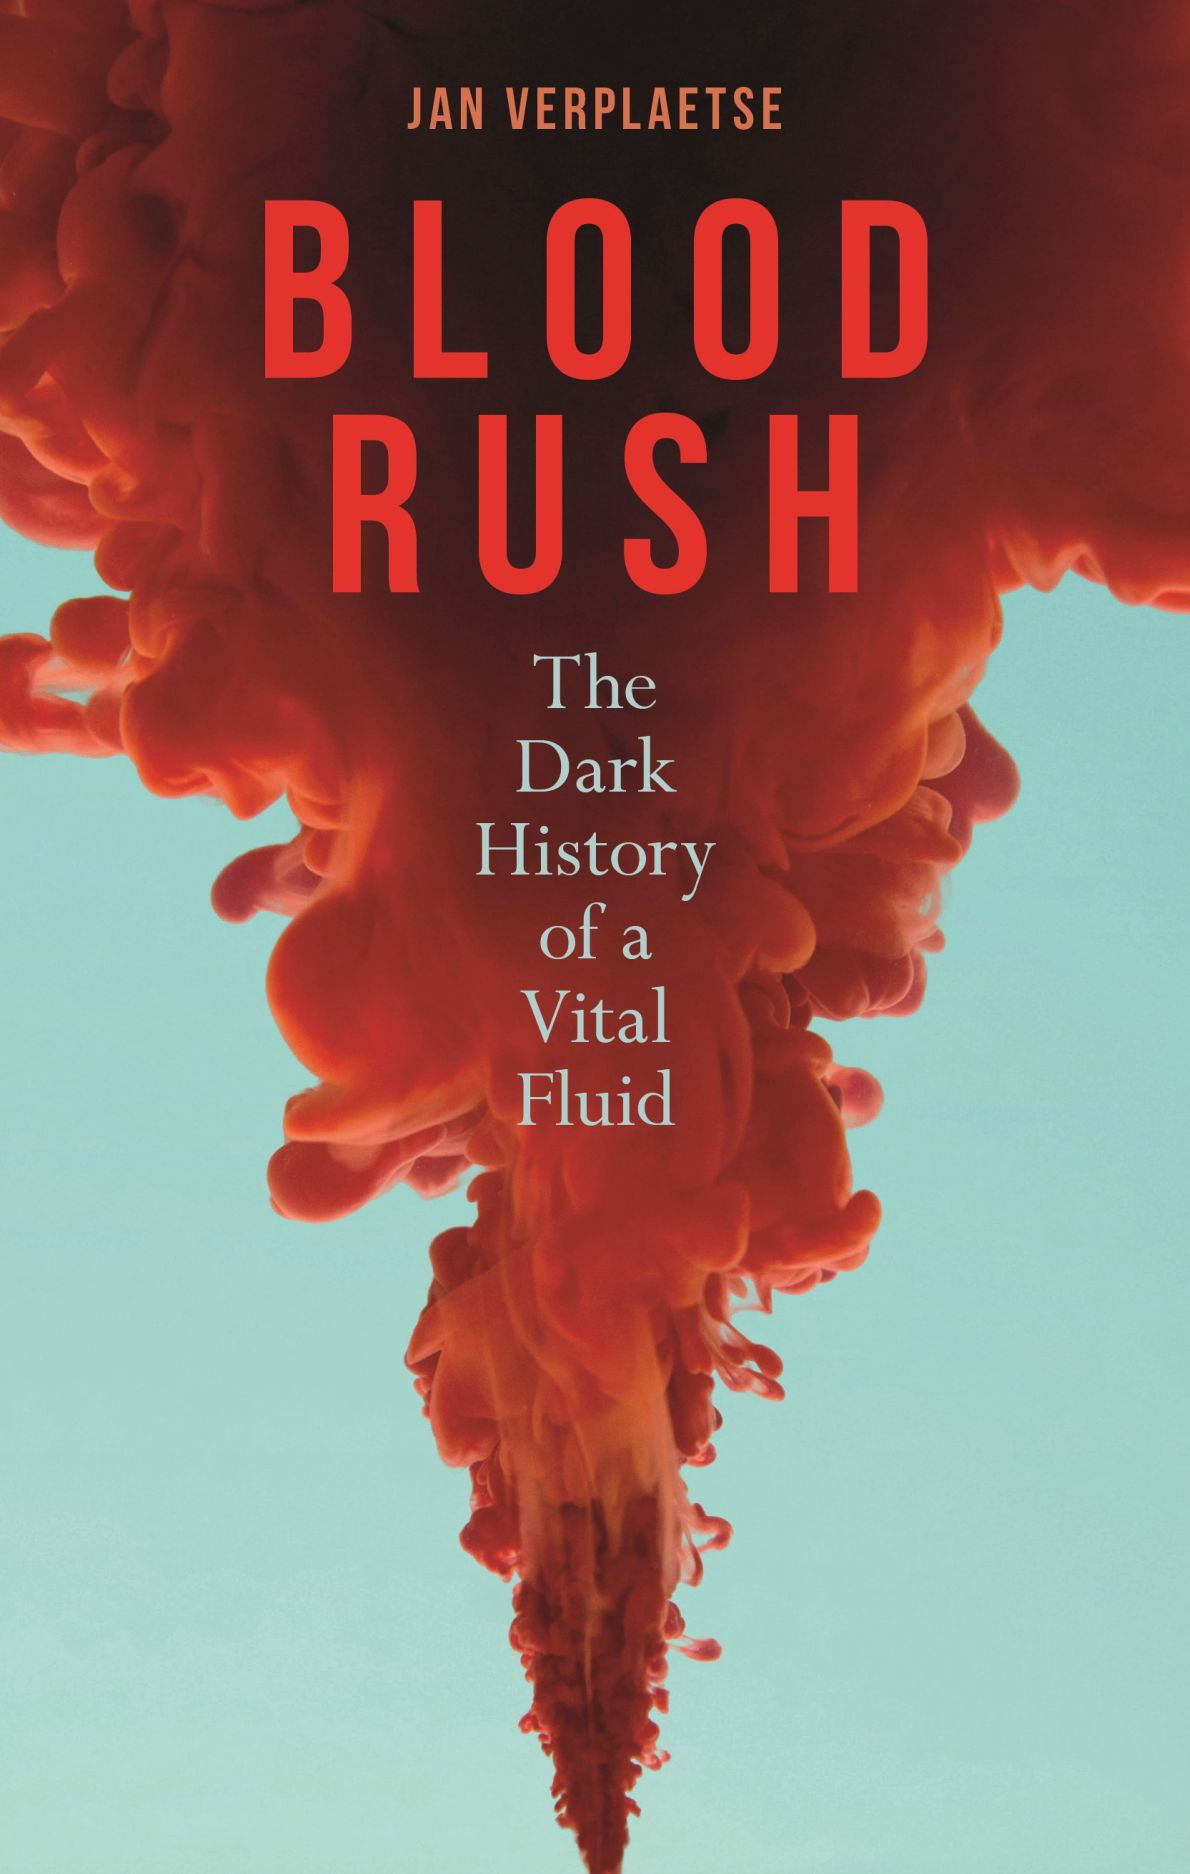 Blood Rush: The Dark History of a Vital Fluid